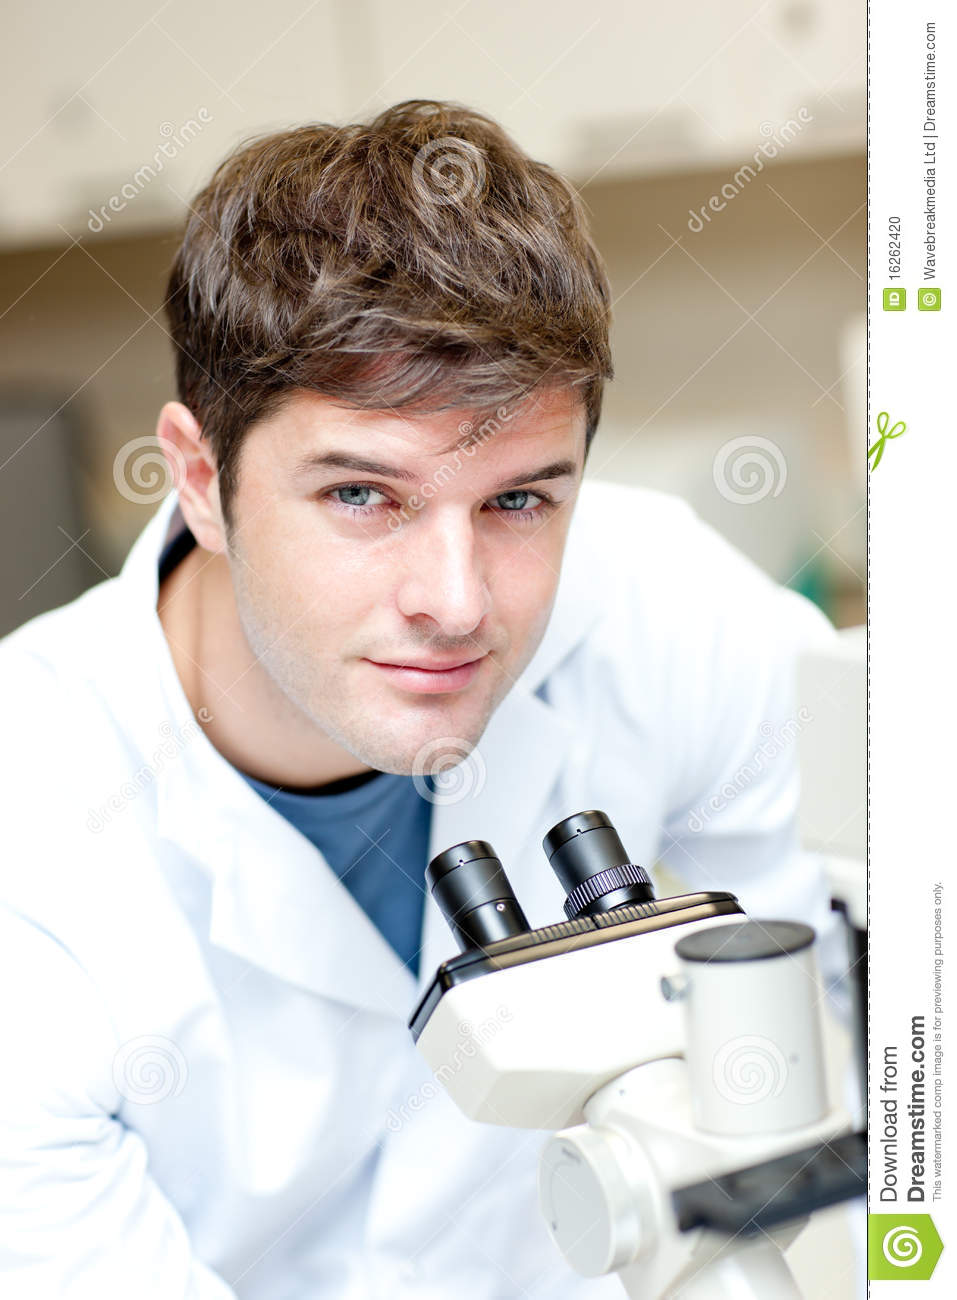 Handsome Male Scientist Using A Microscope Stock Photo - Image ...